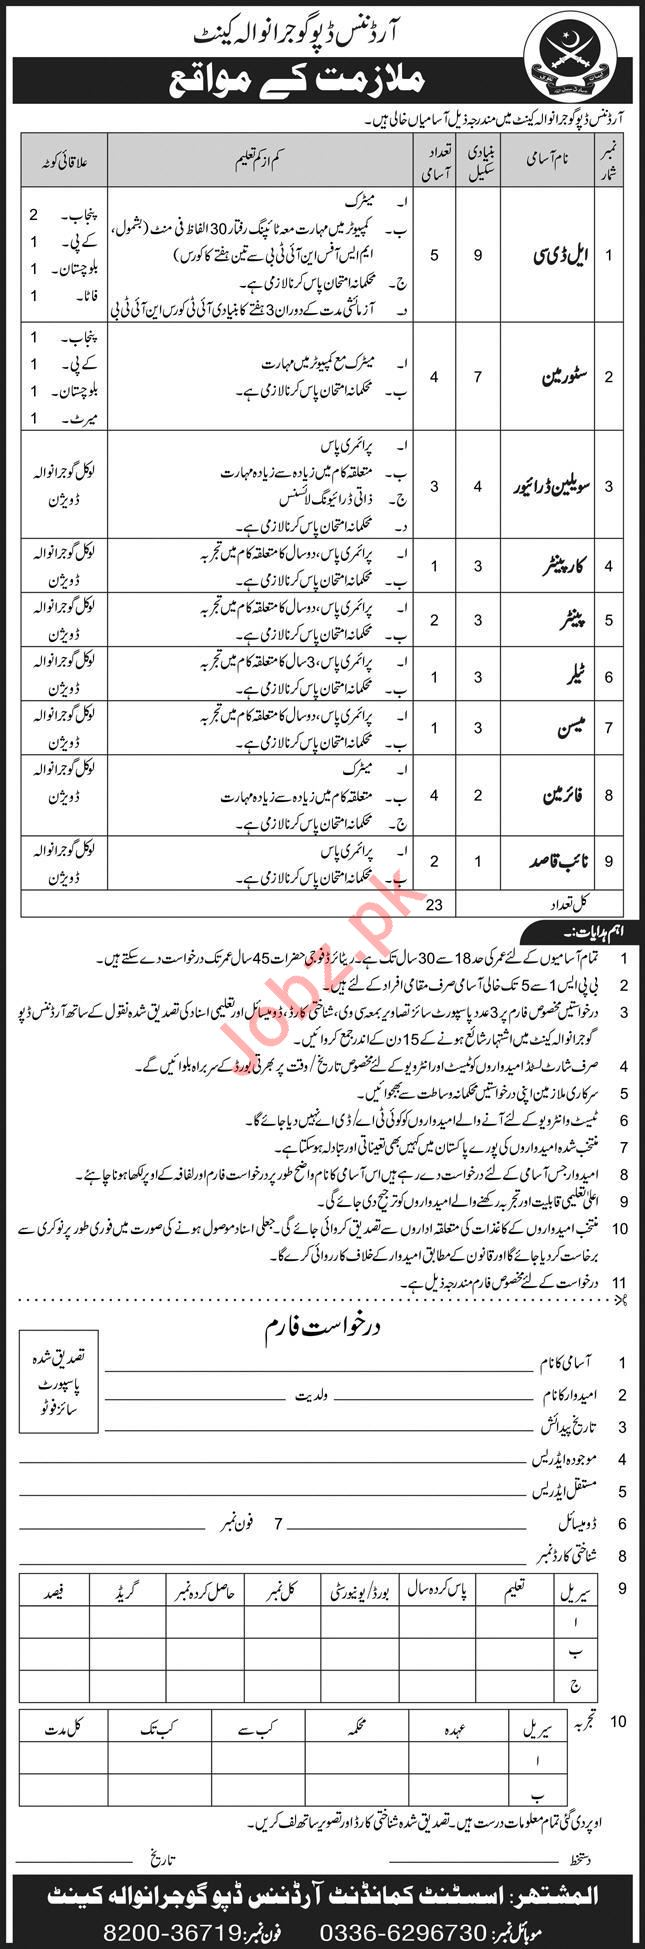 Ordnance Depot Gujranwala Management Jobs 2020